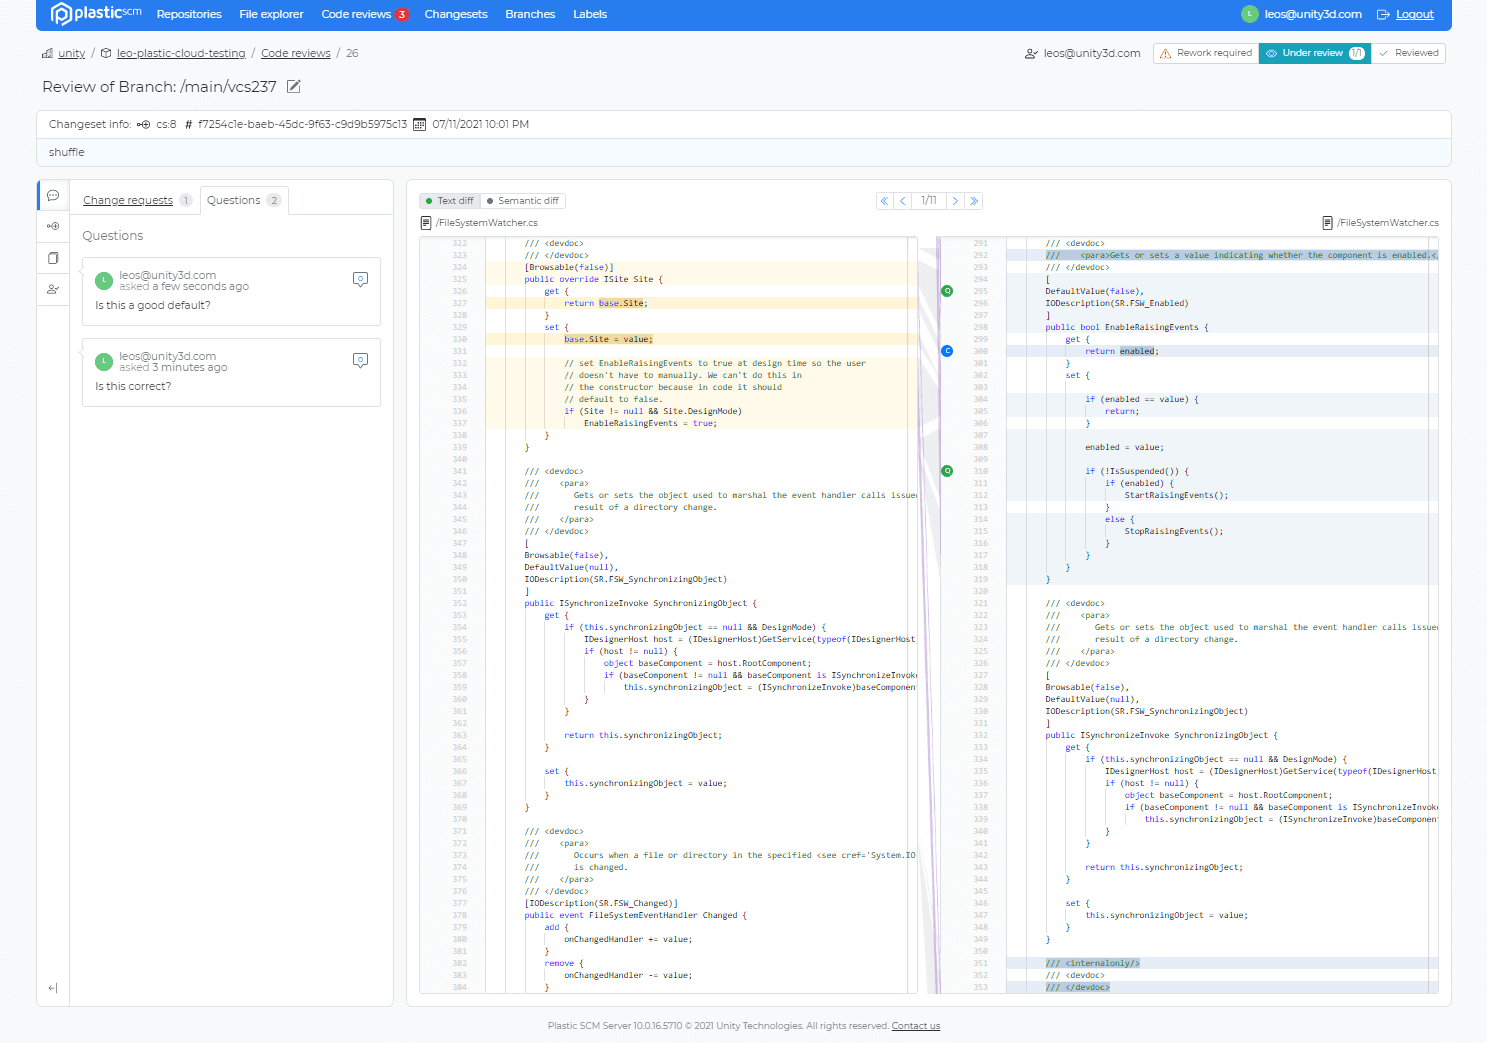 Improved Code review